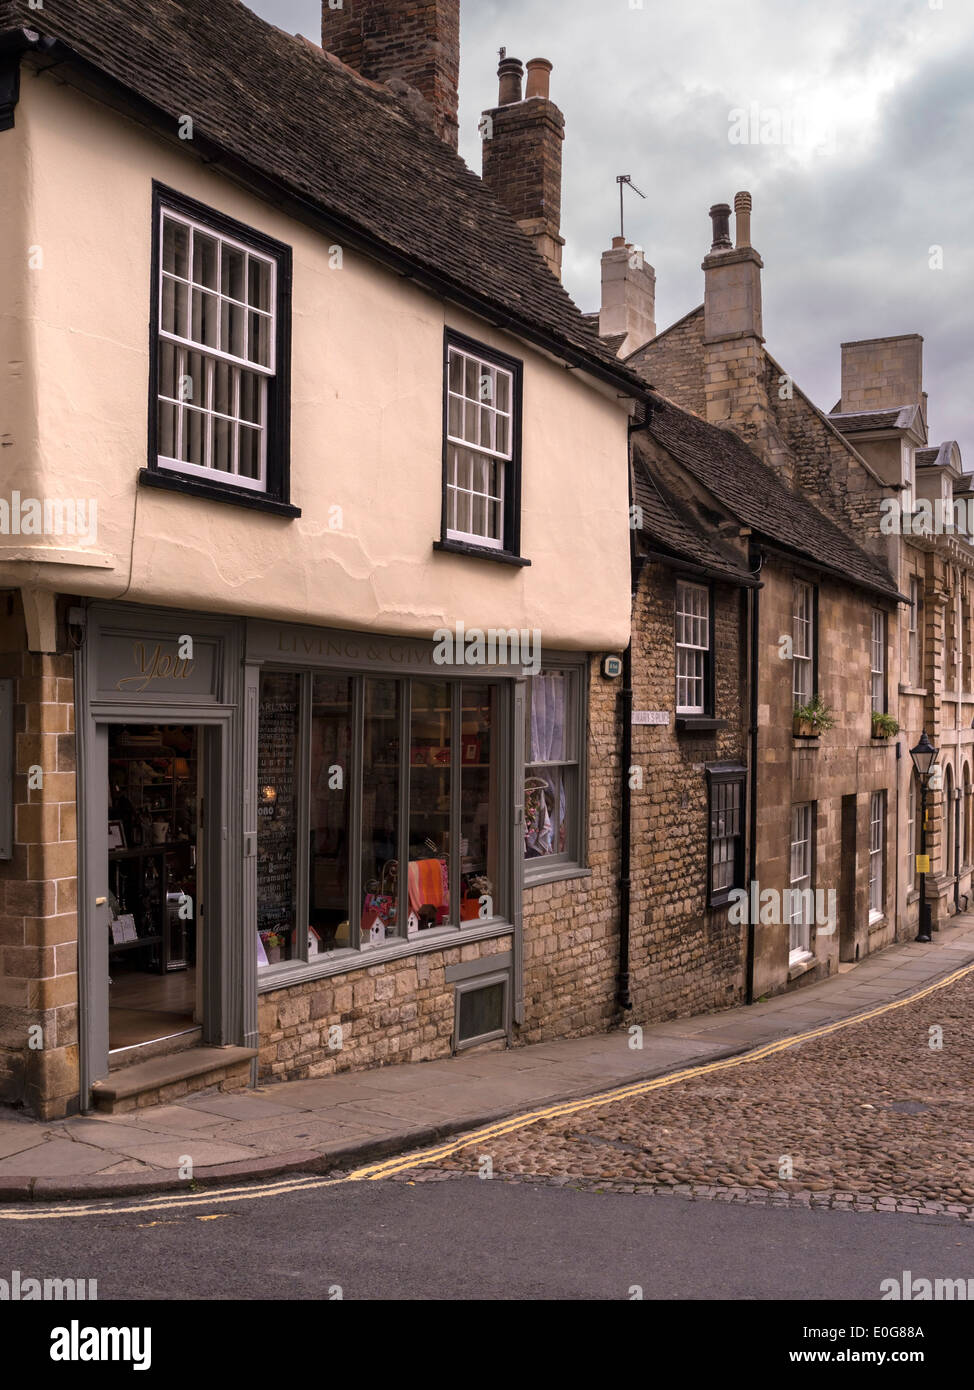 Attractive traditional old shop fronts and stone buildings, Stamford, Lincolnshire, England, UK - Stock Image